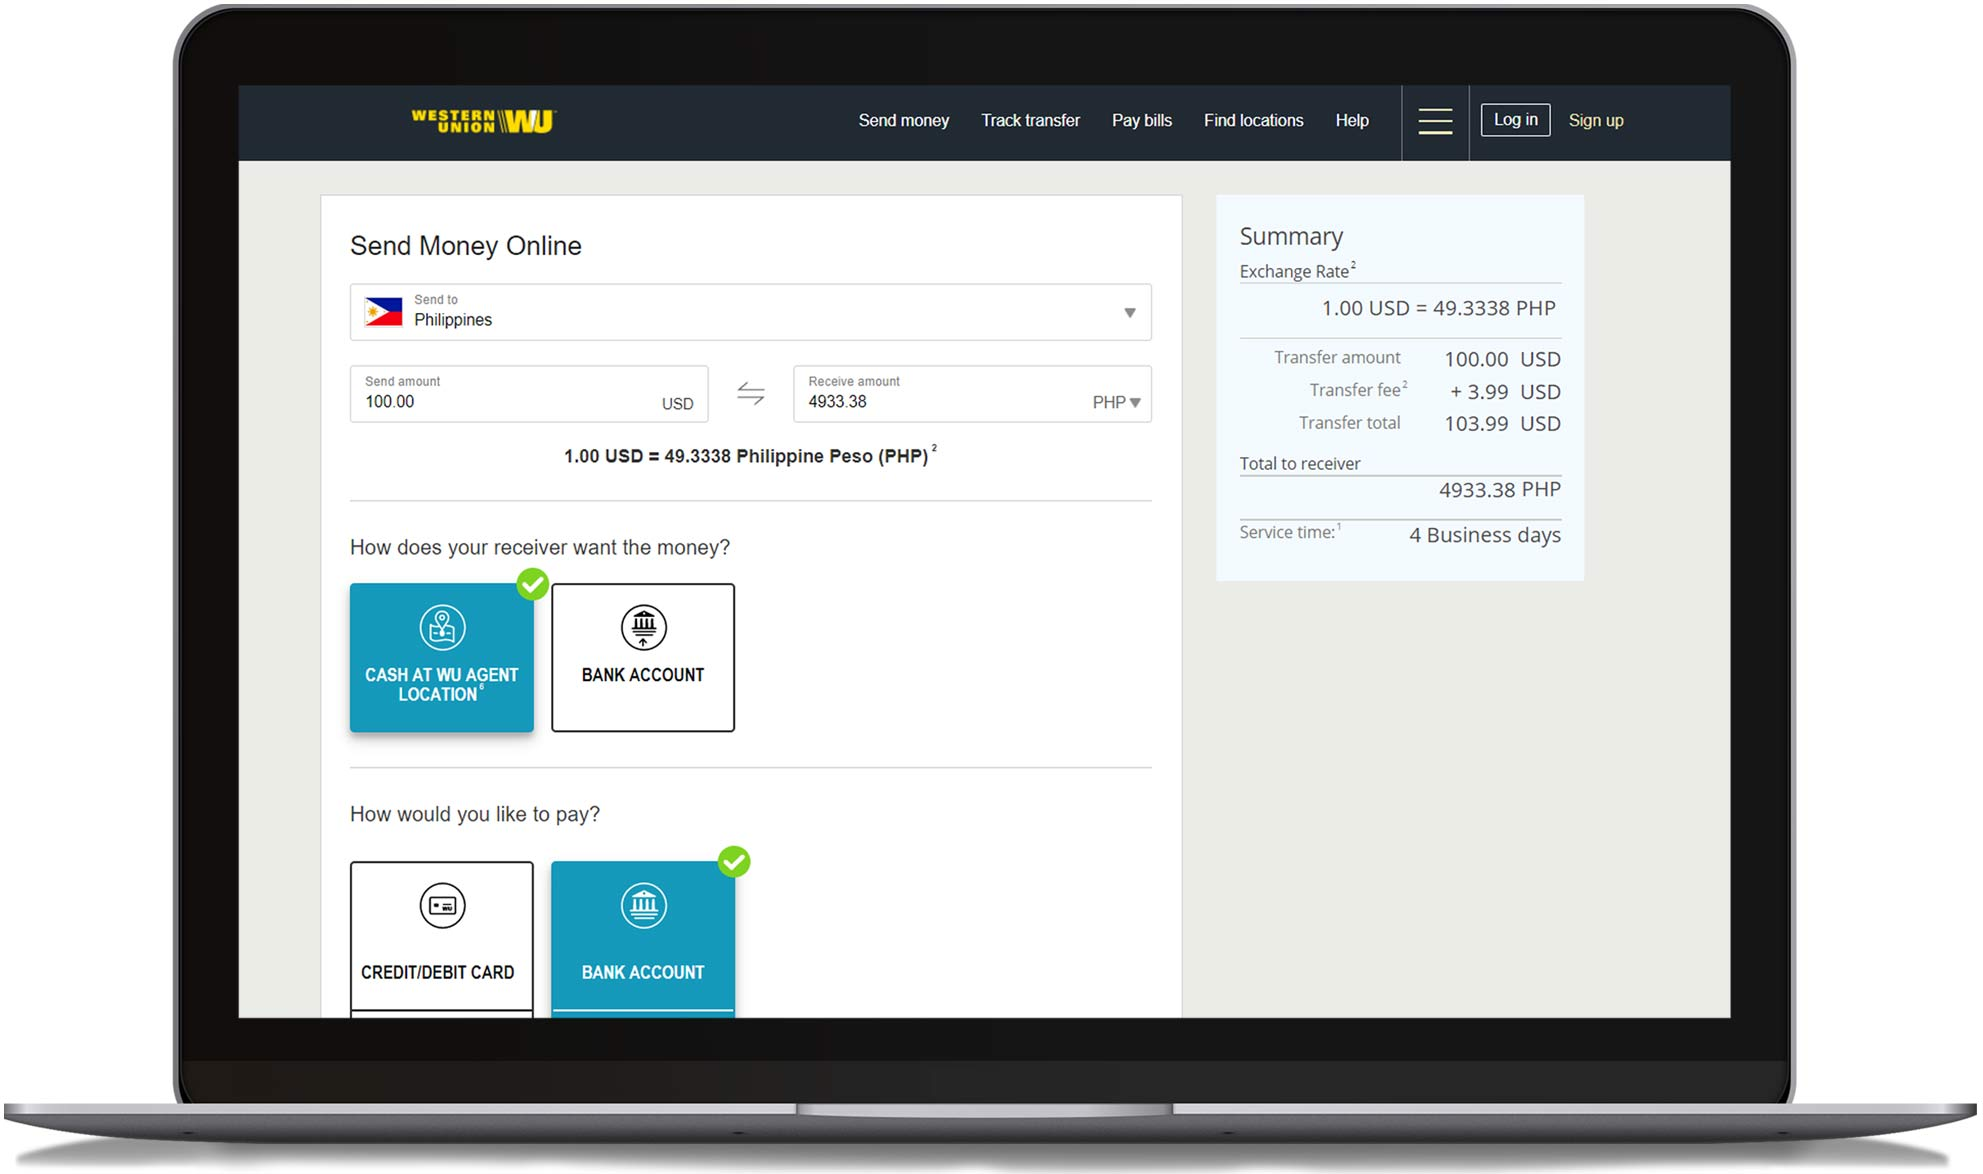 Send money online to the Philippines with Western Union